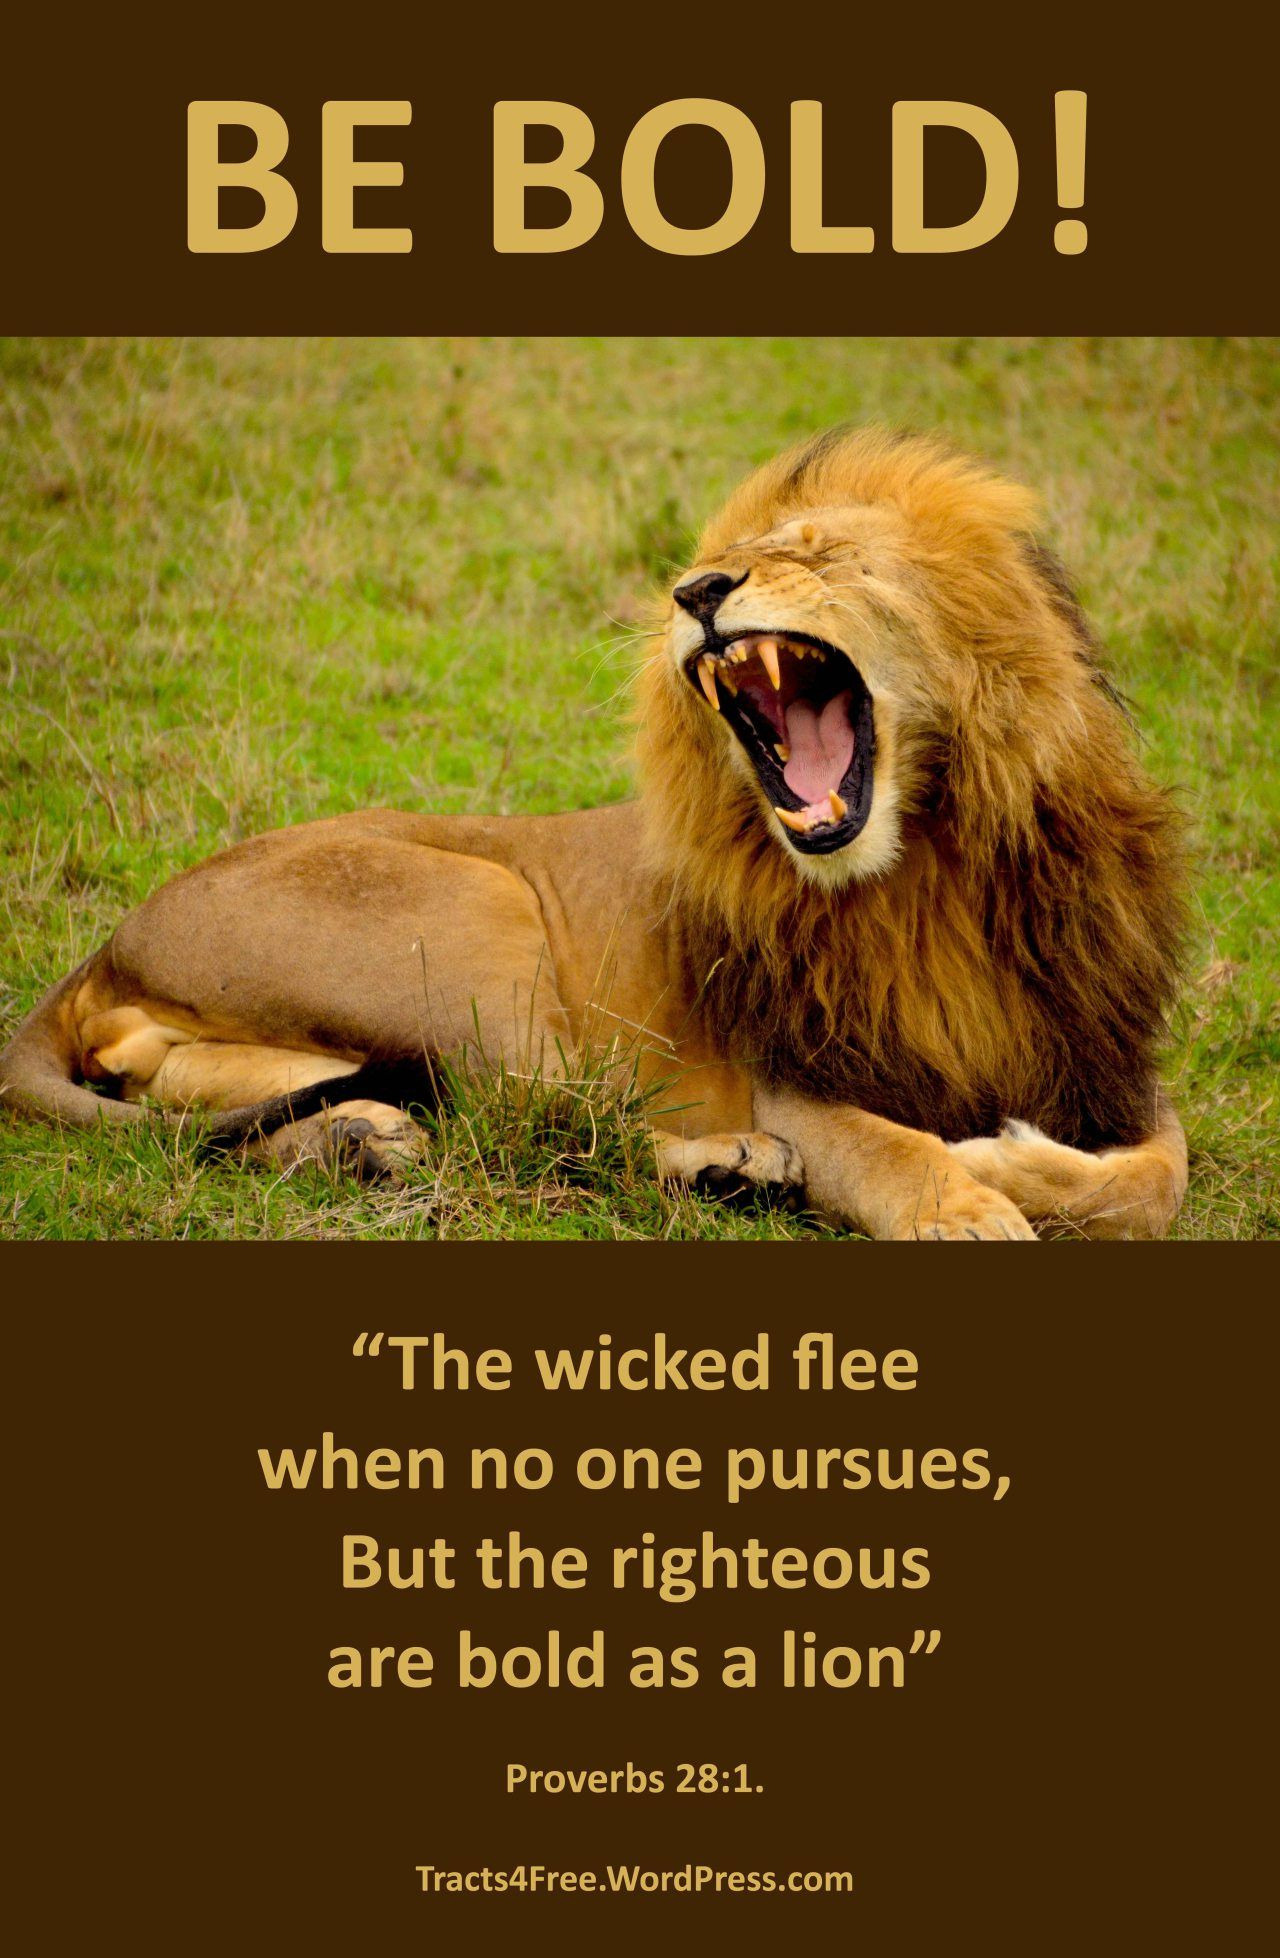 Christian Sports Posters 1 | Religious | Pinterest | Animals, Lion - Free Printable Sports Posters